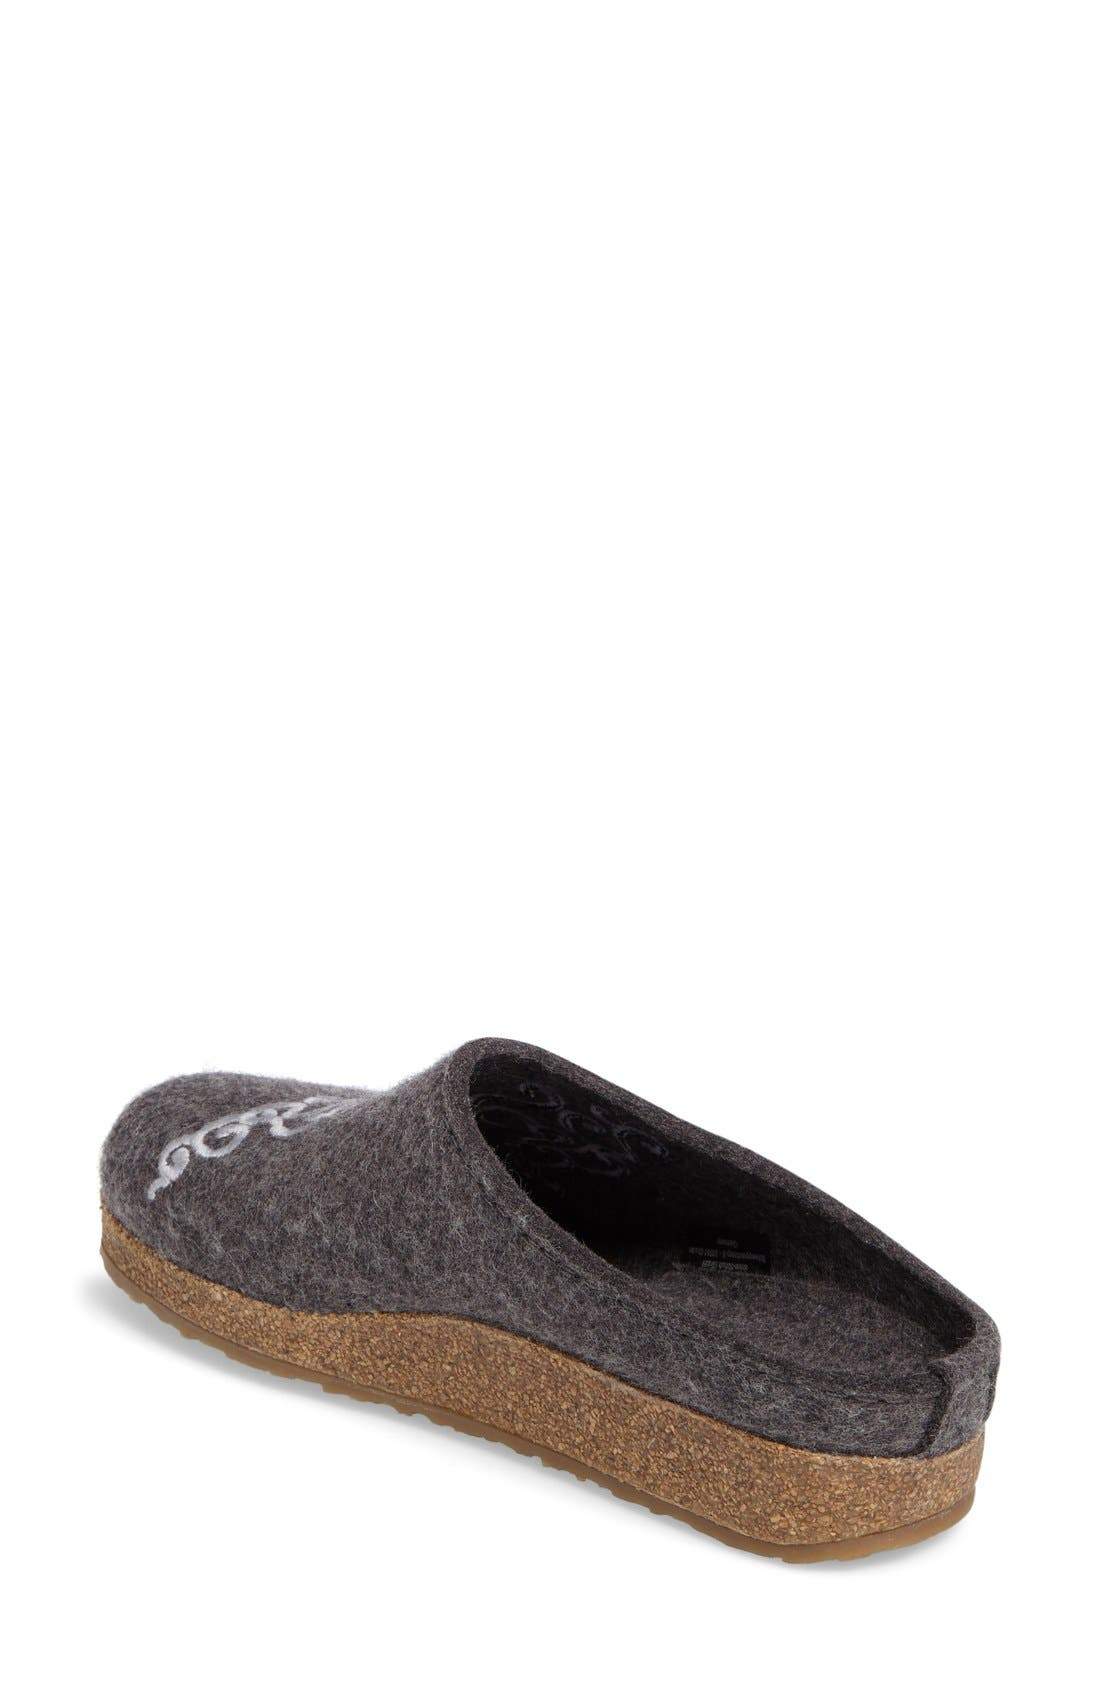 Alternate Image 2  - Haflinger Symphony Slipper (Women)